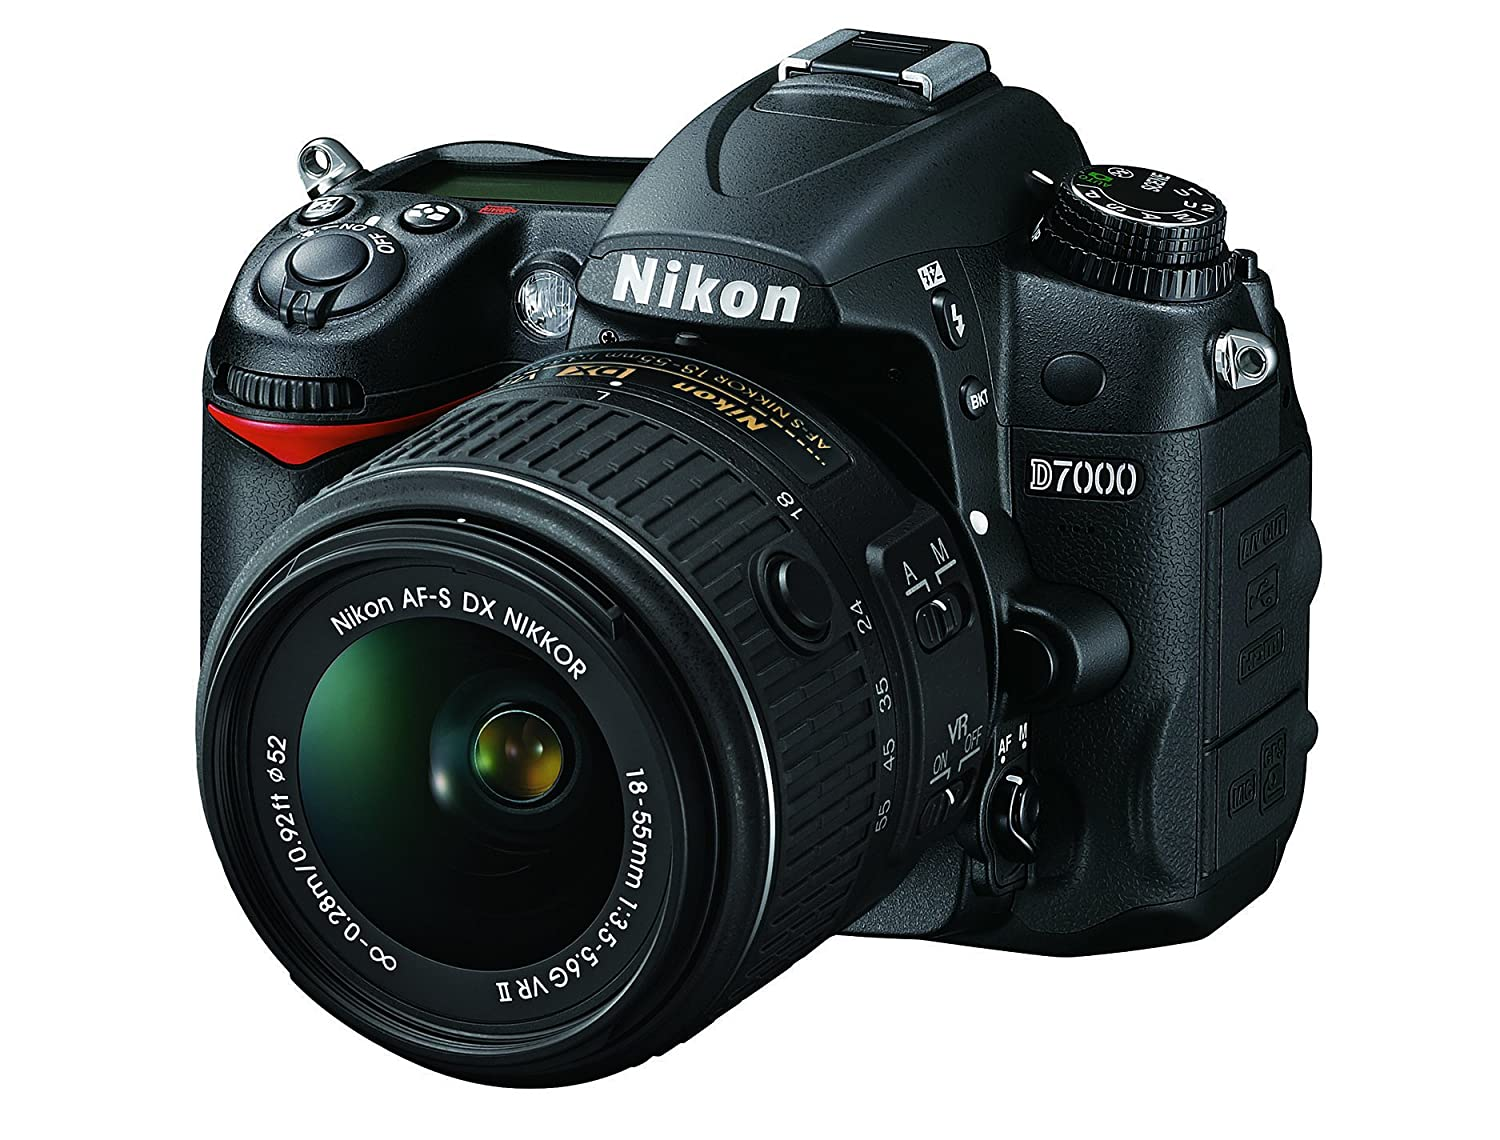 Camera Dslr Camera Megapixel amazon com nikon d7000 16 2 megapixel digital slr camera with 18 55mm lens black photo